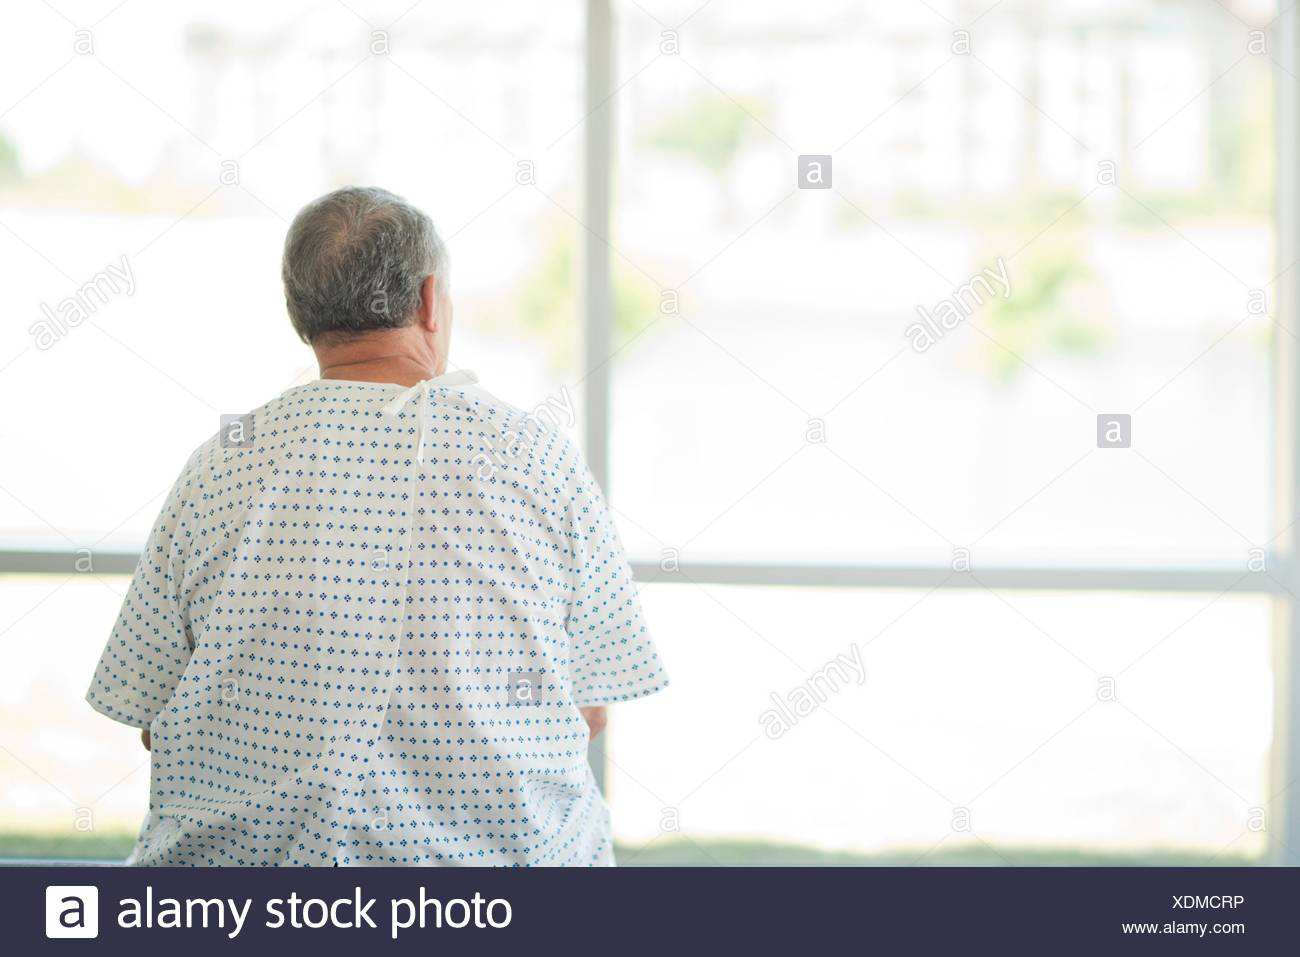 Male patient wearing gown looking through hospital window, rear view. - Stock Image